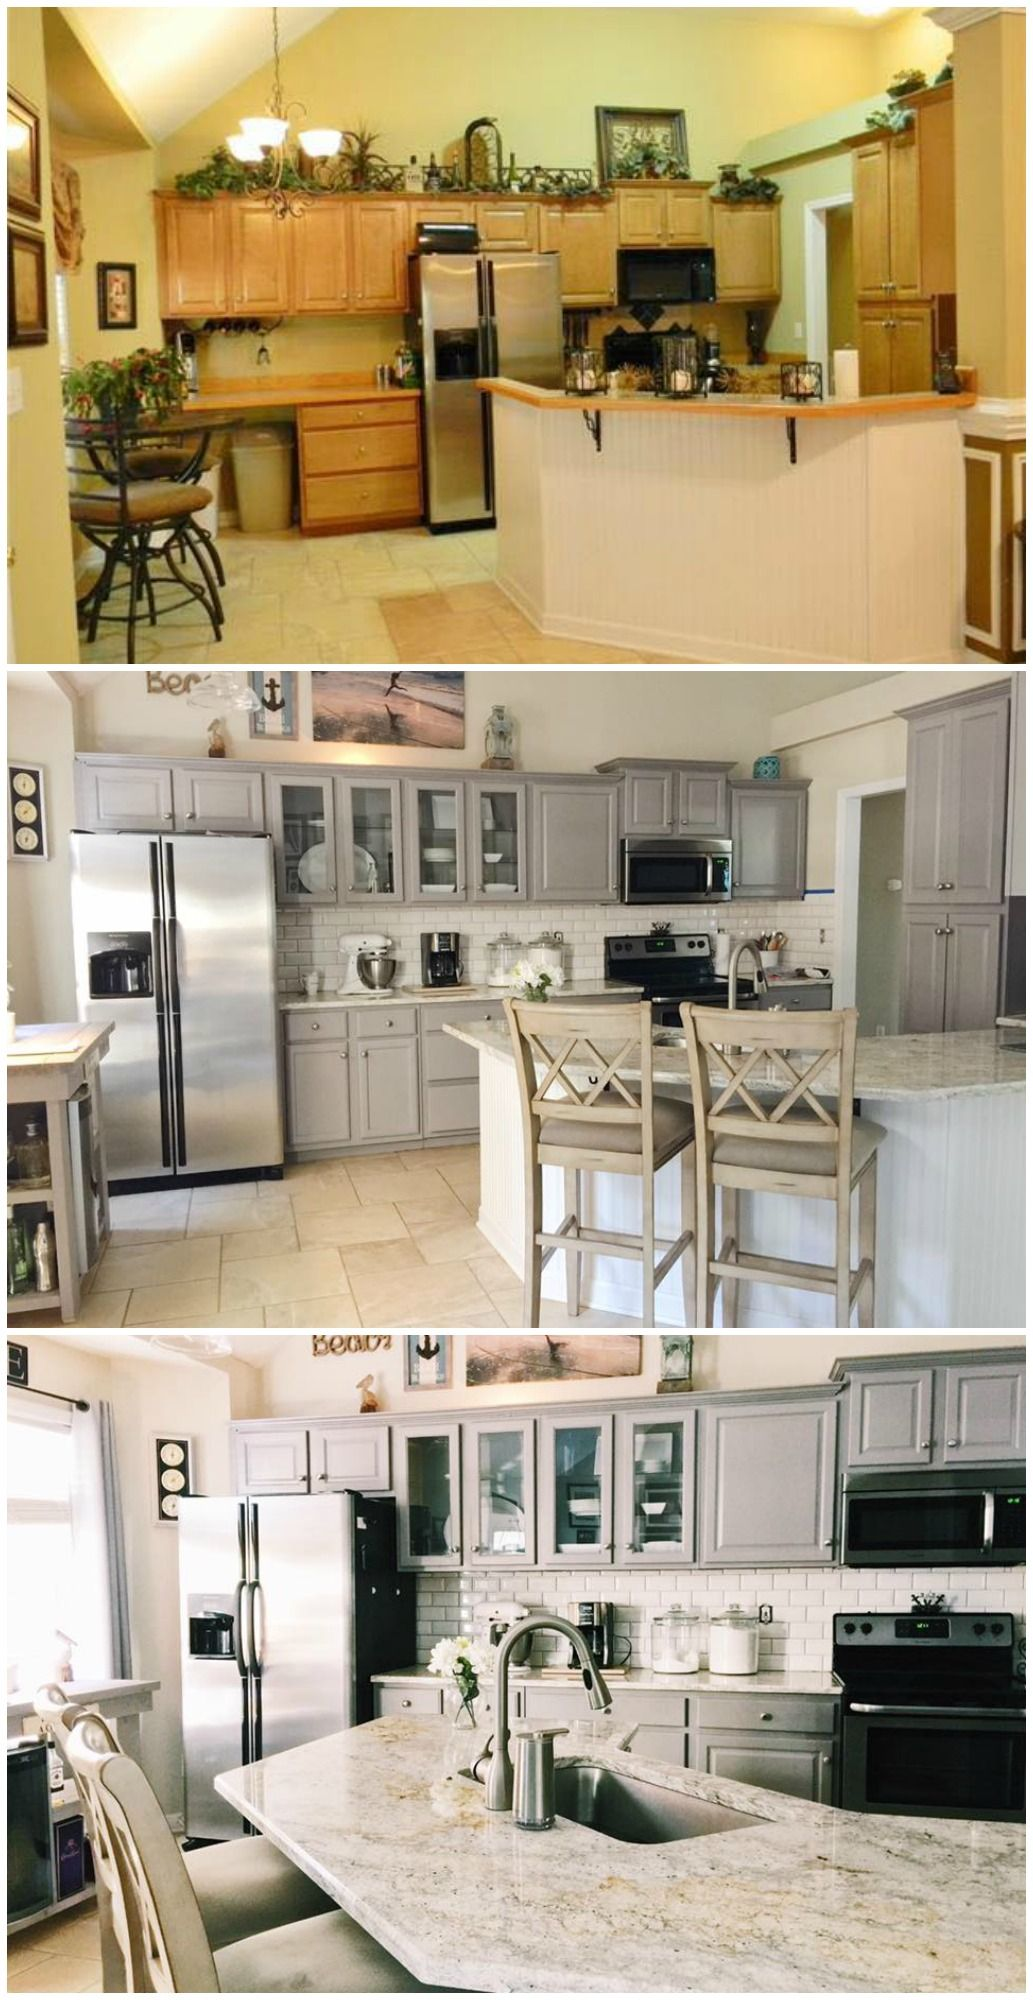 easy kitchen remodel table with 6 chairs painted cabinets stainless steal appliances granite white tile backsplash wall paint